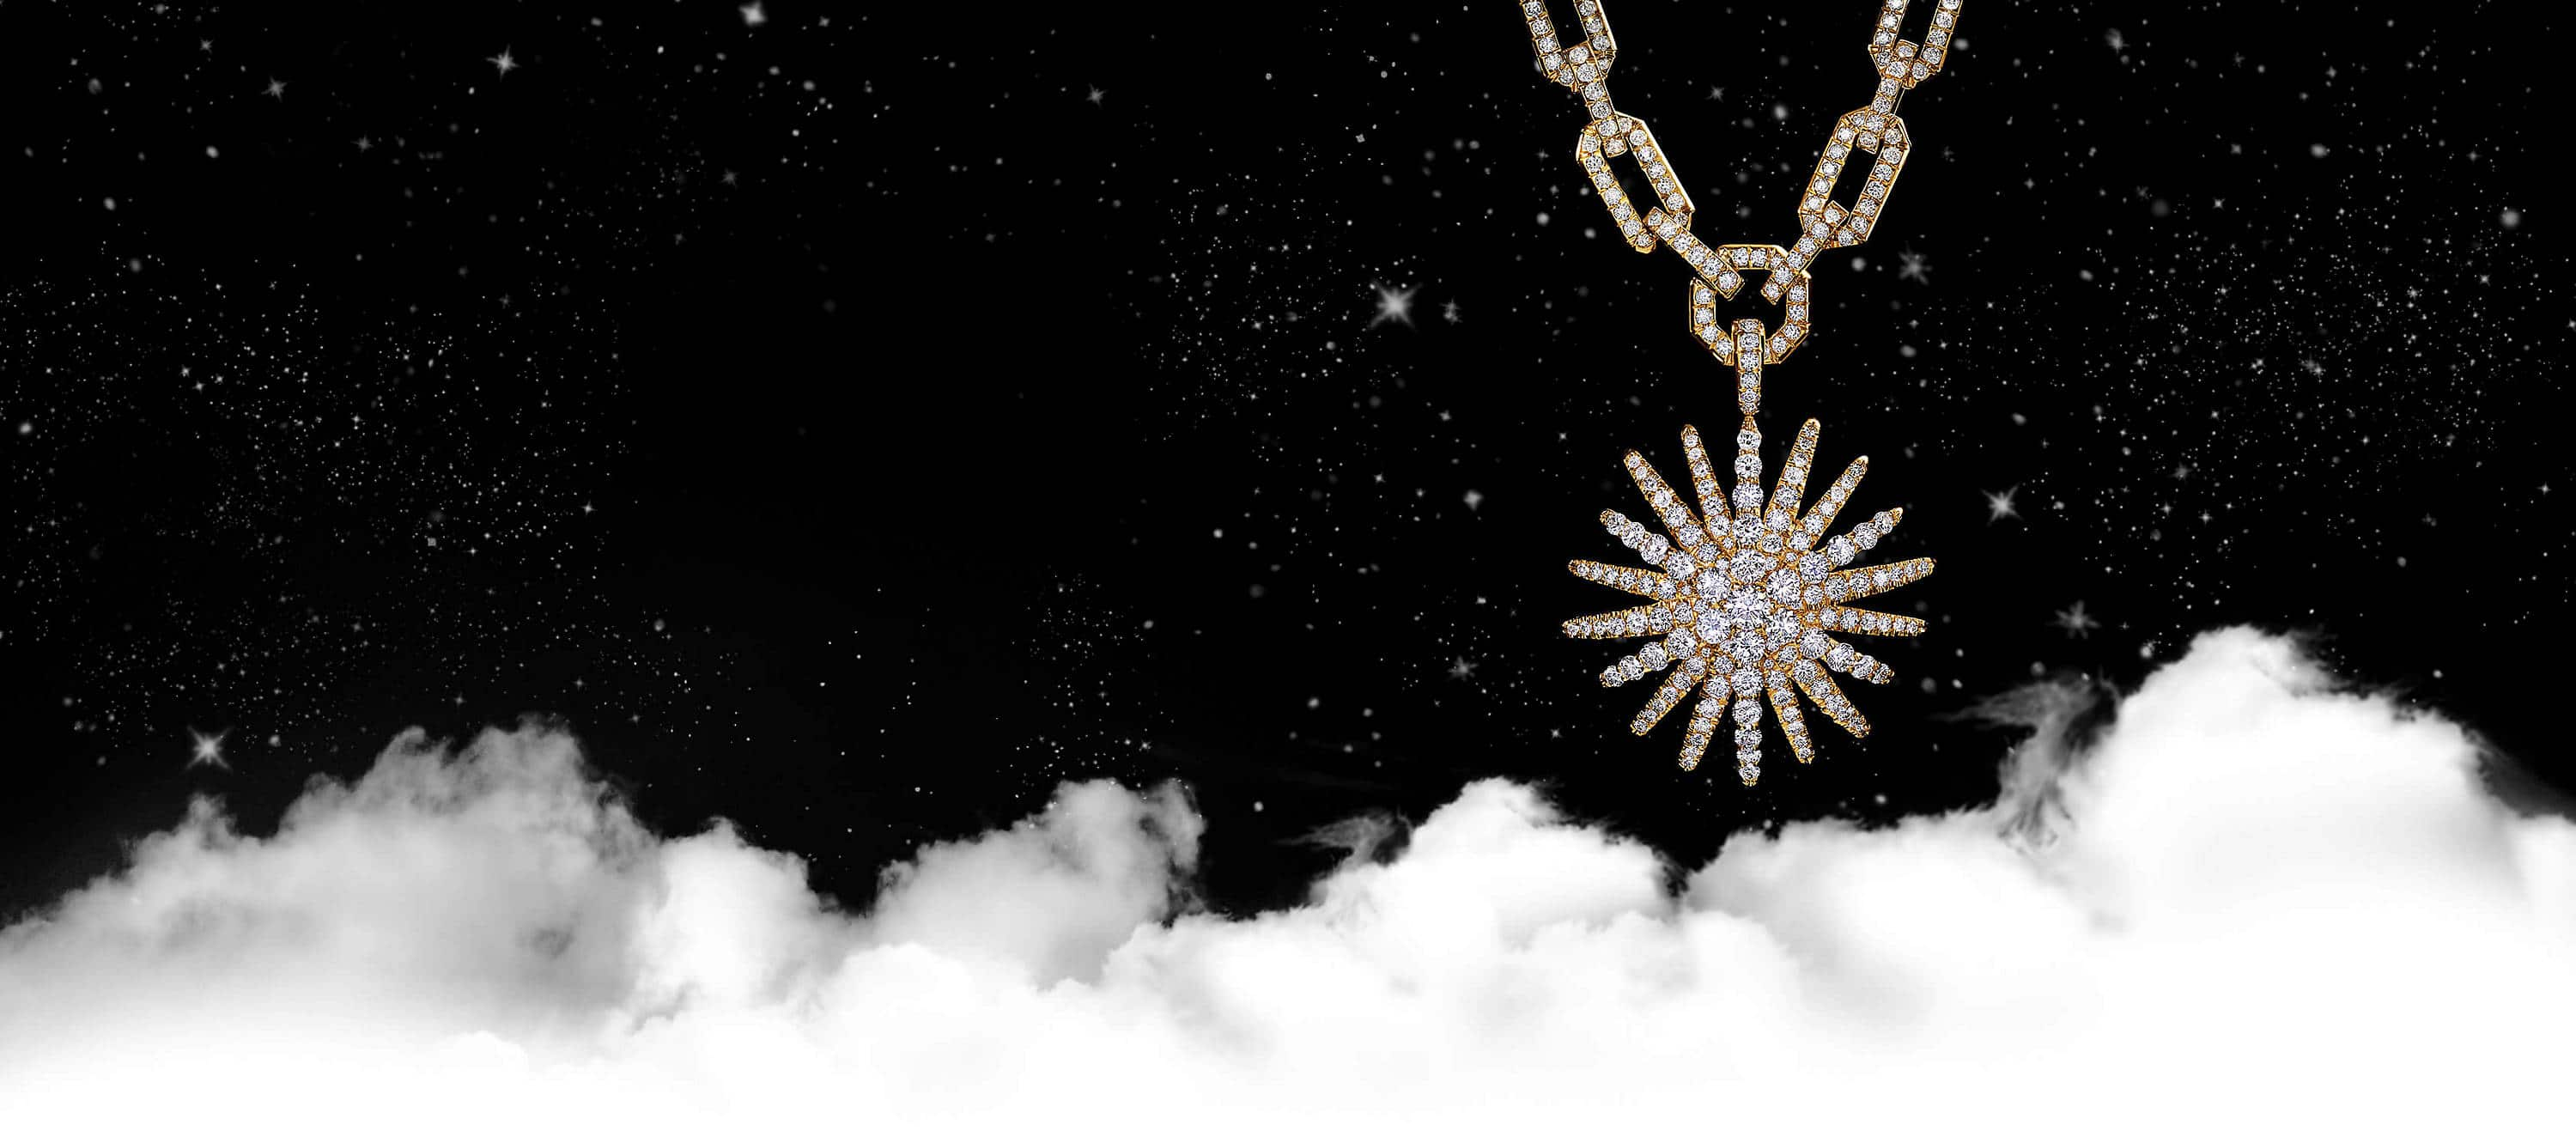 A color photo shows a David Yurman Starburst pendant hanging from a diamond-encrusted chain in front of a starry night sky with white clouds. The women's jewelry is crafted from 18K yellow gold with pavé diamonds.